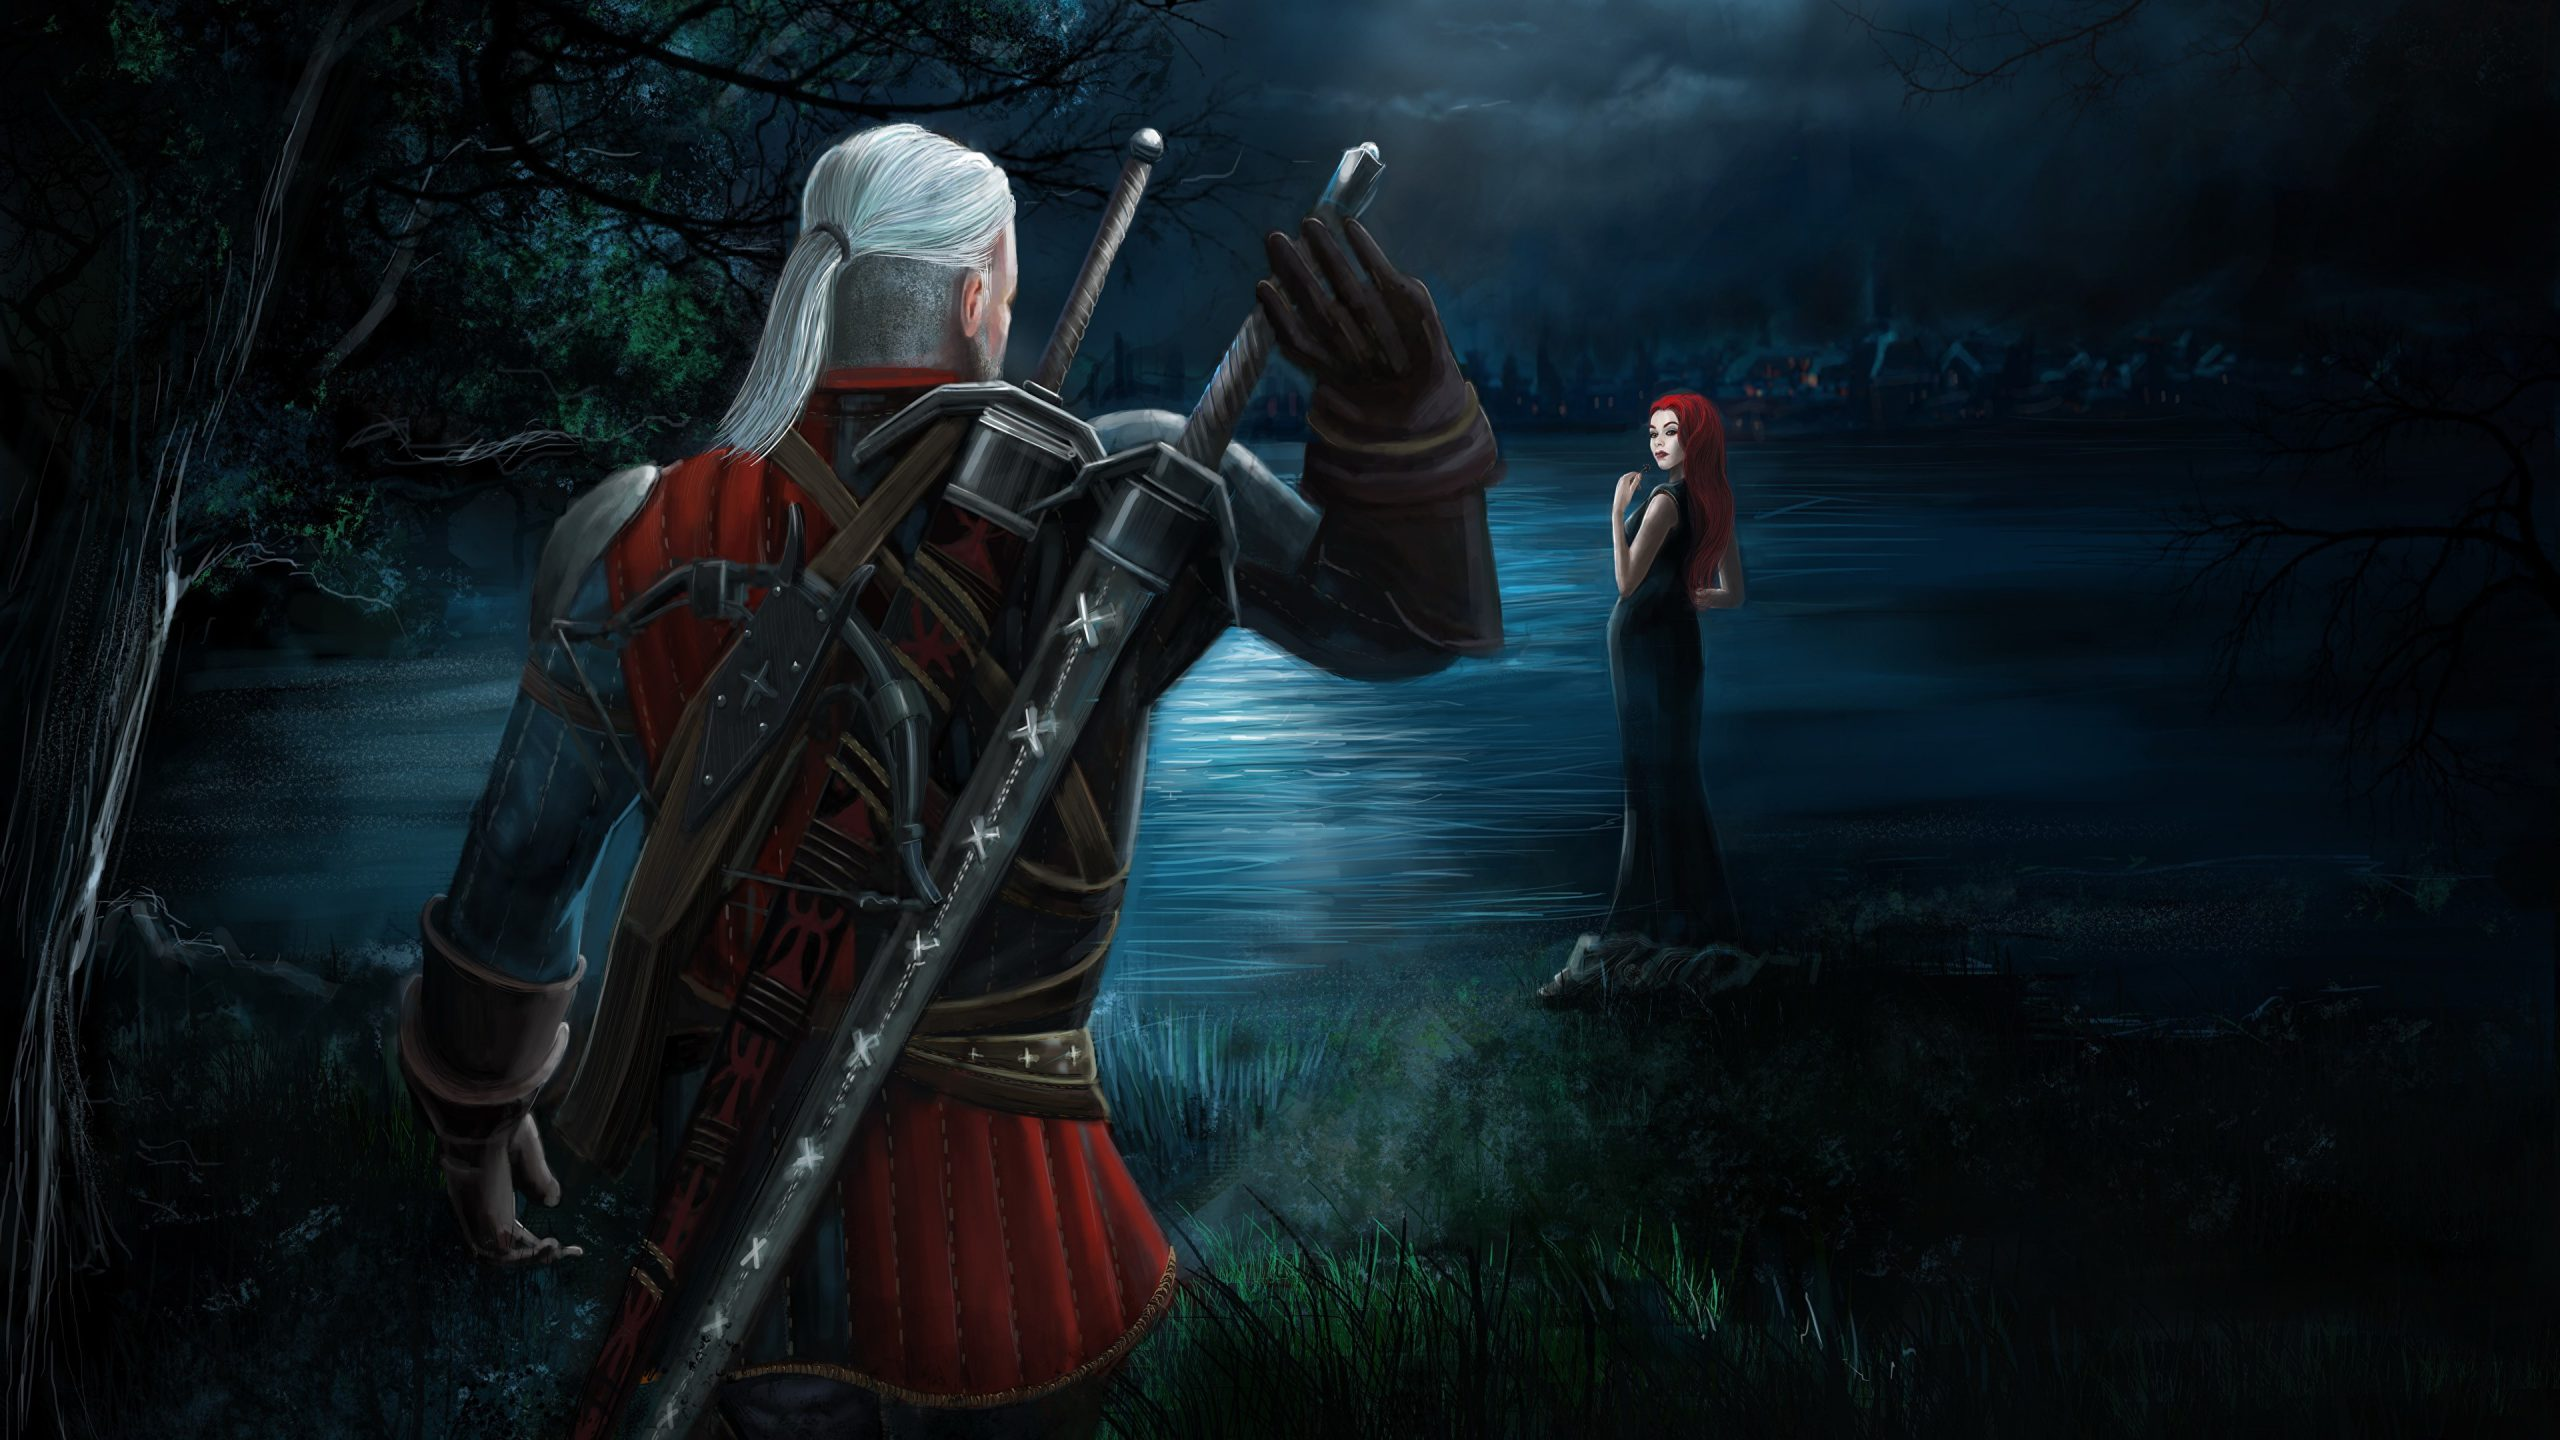 Witcher Game Wallpaper Kolpaper Awesome Free Hd Wallpapers